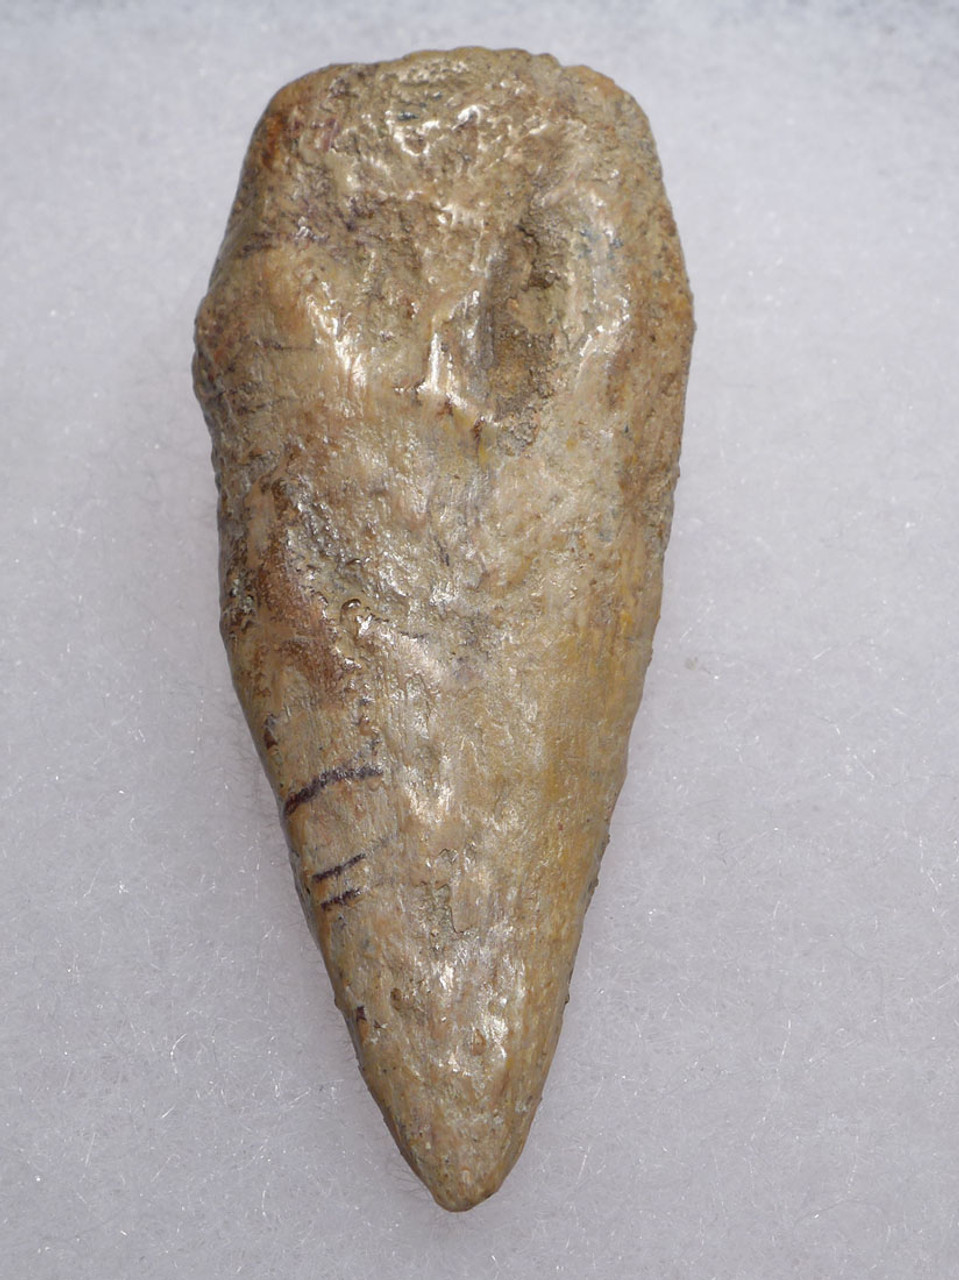 SPINOSAURUS CLAW FOSSIL FROM THE FOOT OF THE DINOSAUR *DC3